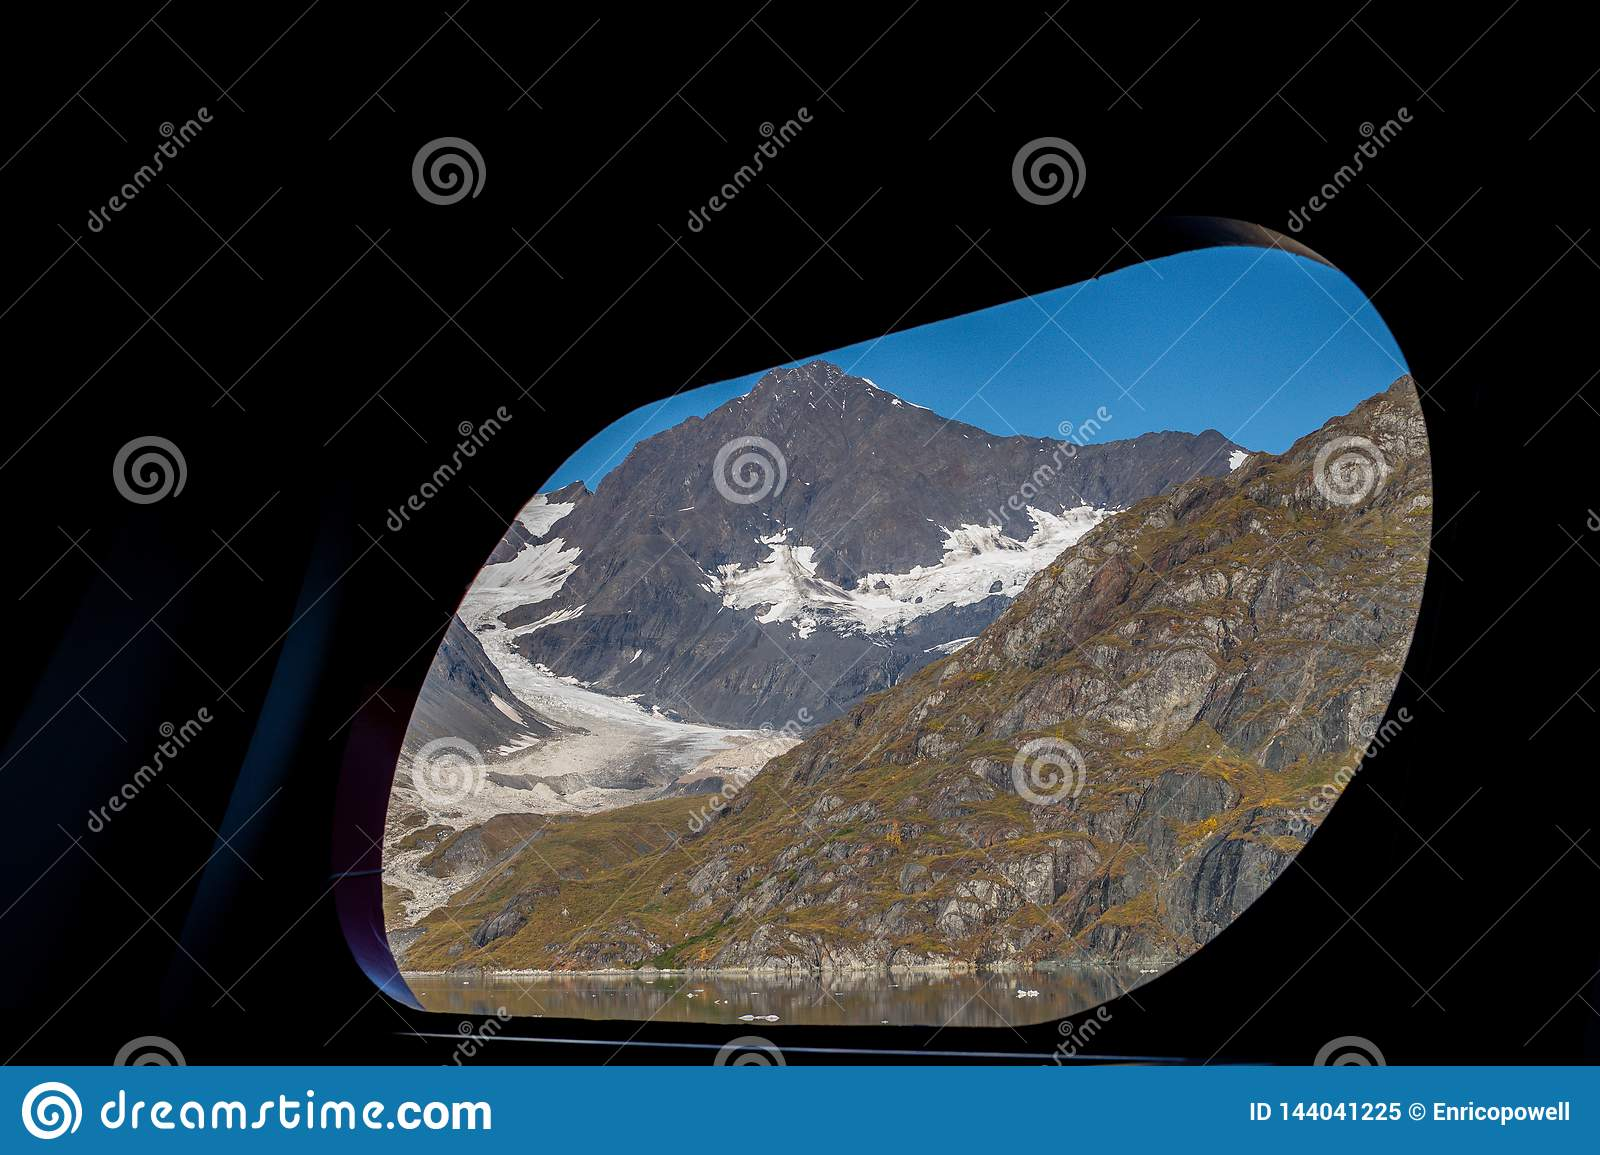 Scenic view through ship port hole/window of snow covered mountains